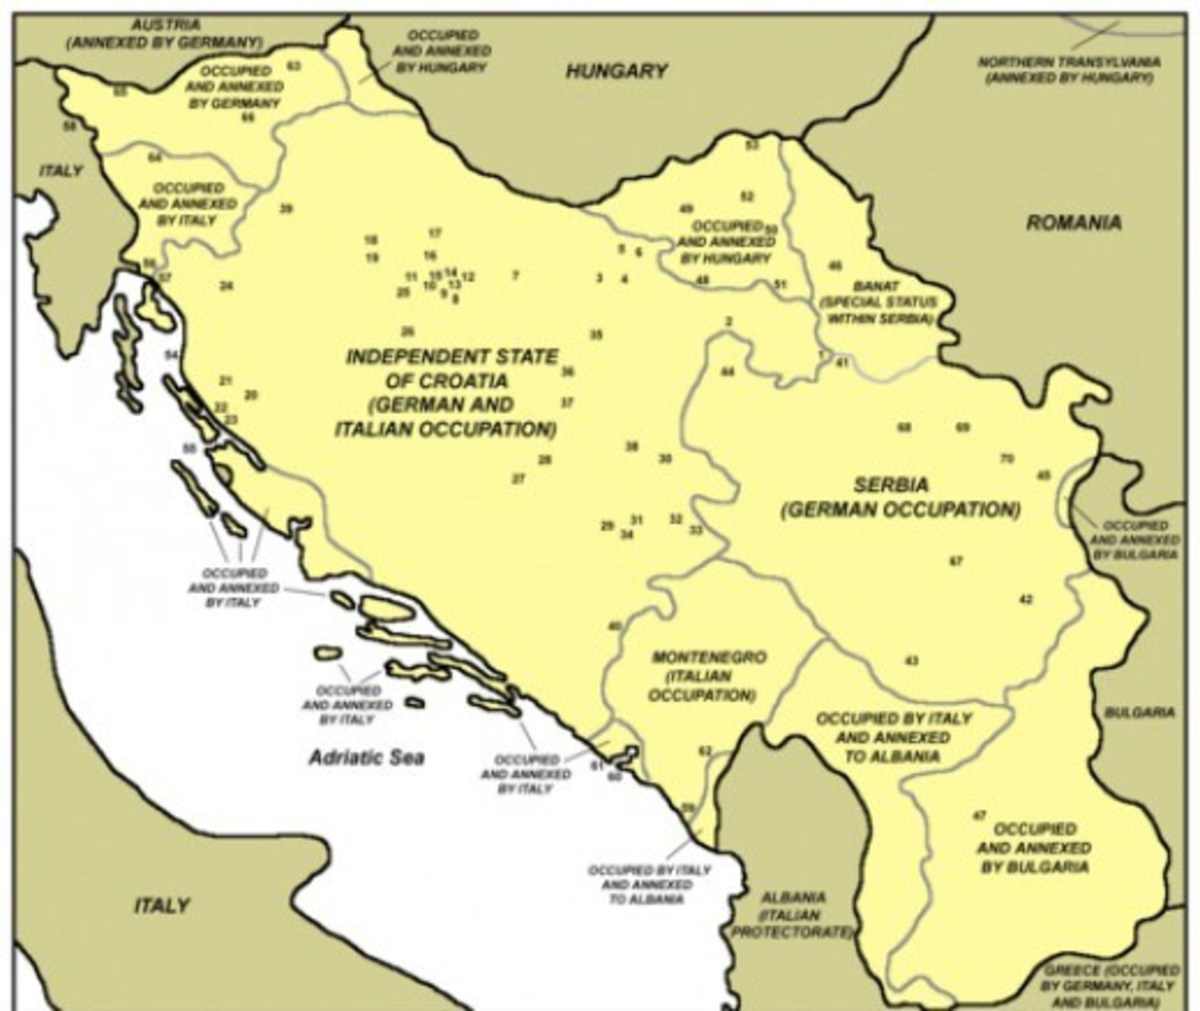 Location of concentration camps in the former Yugoslavia.